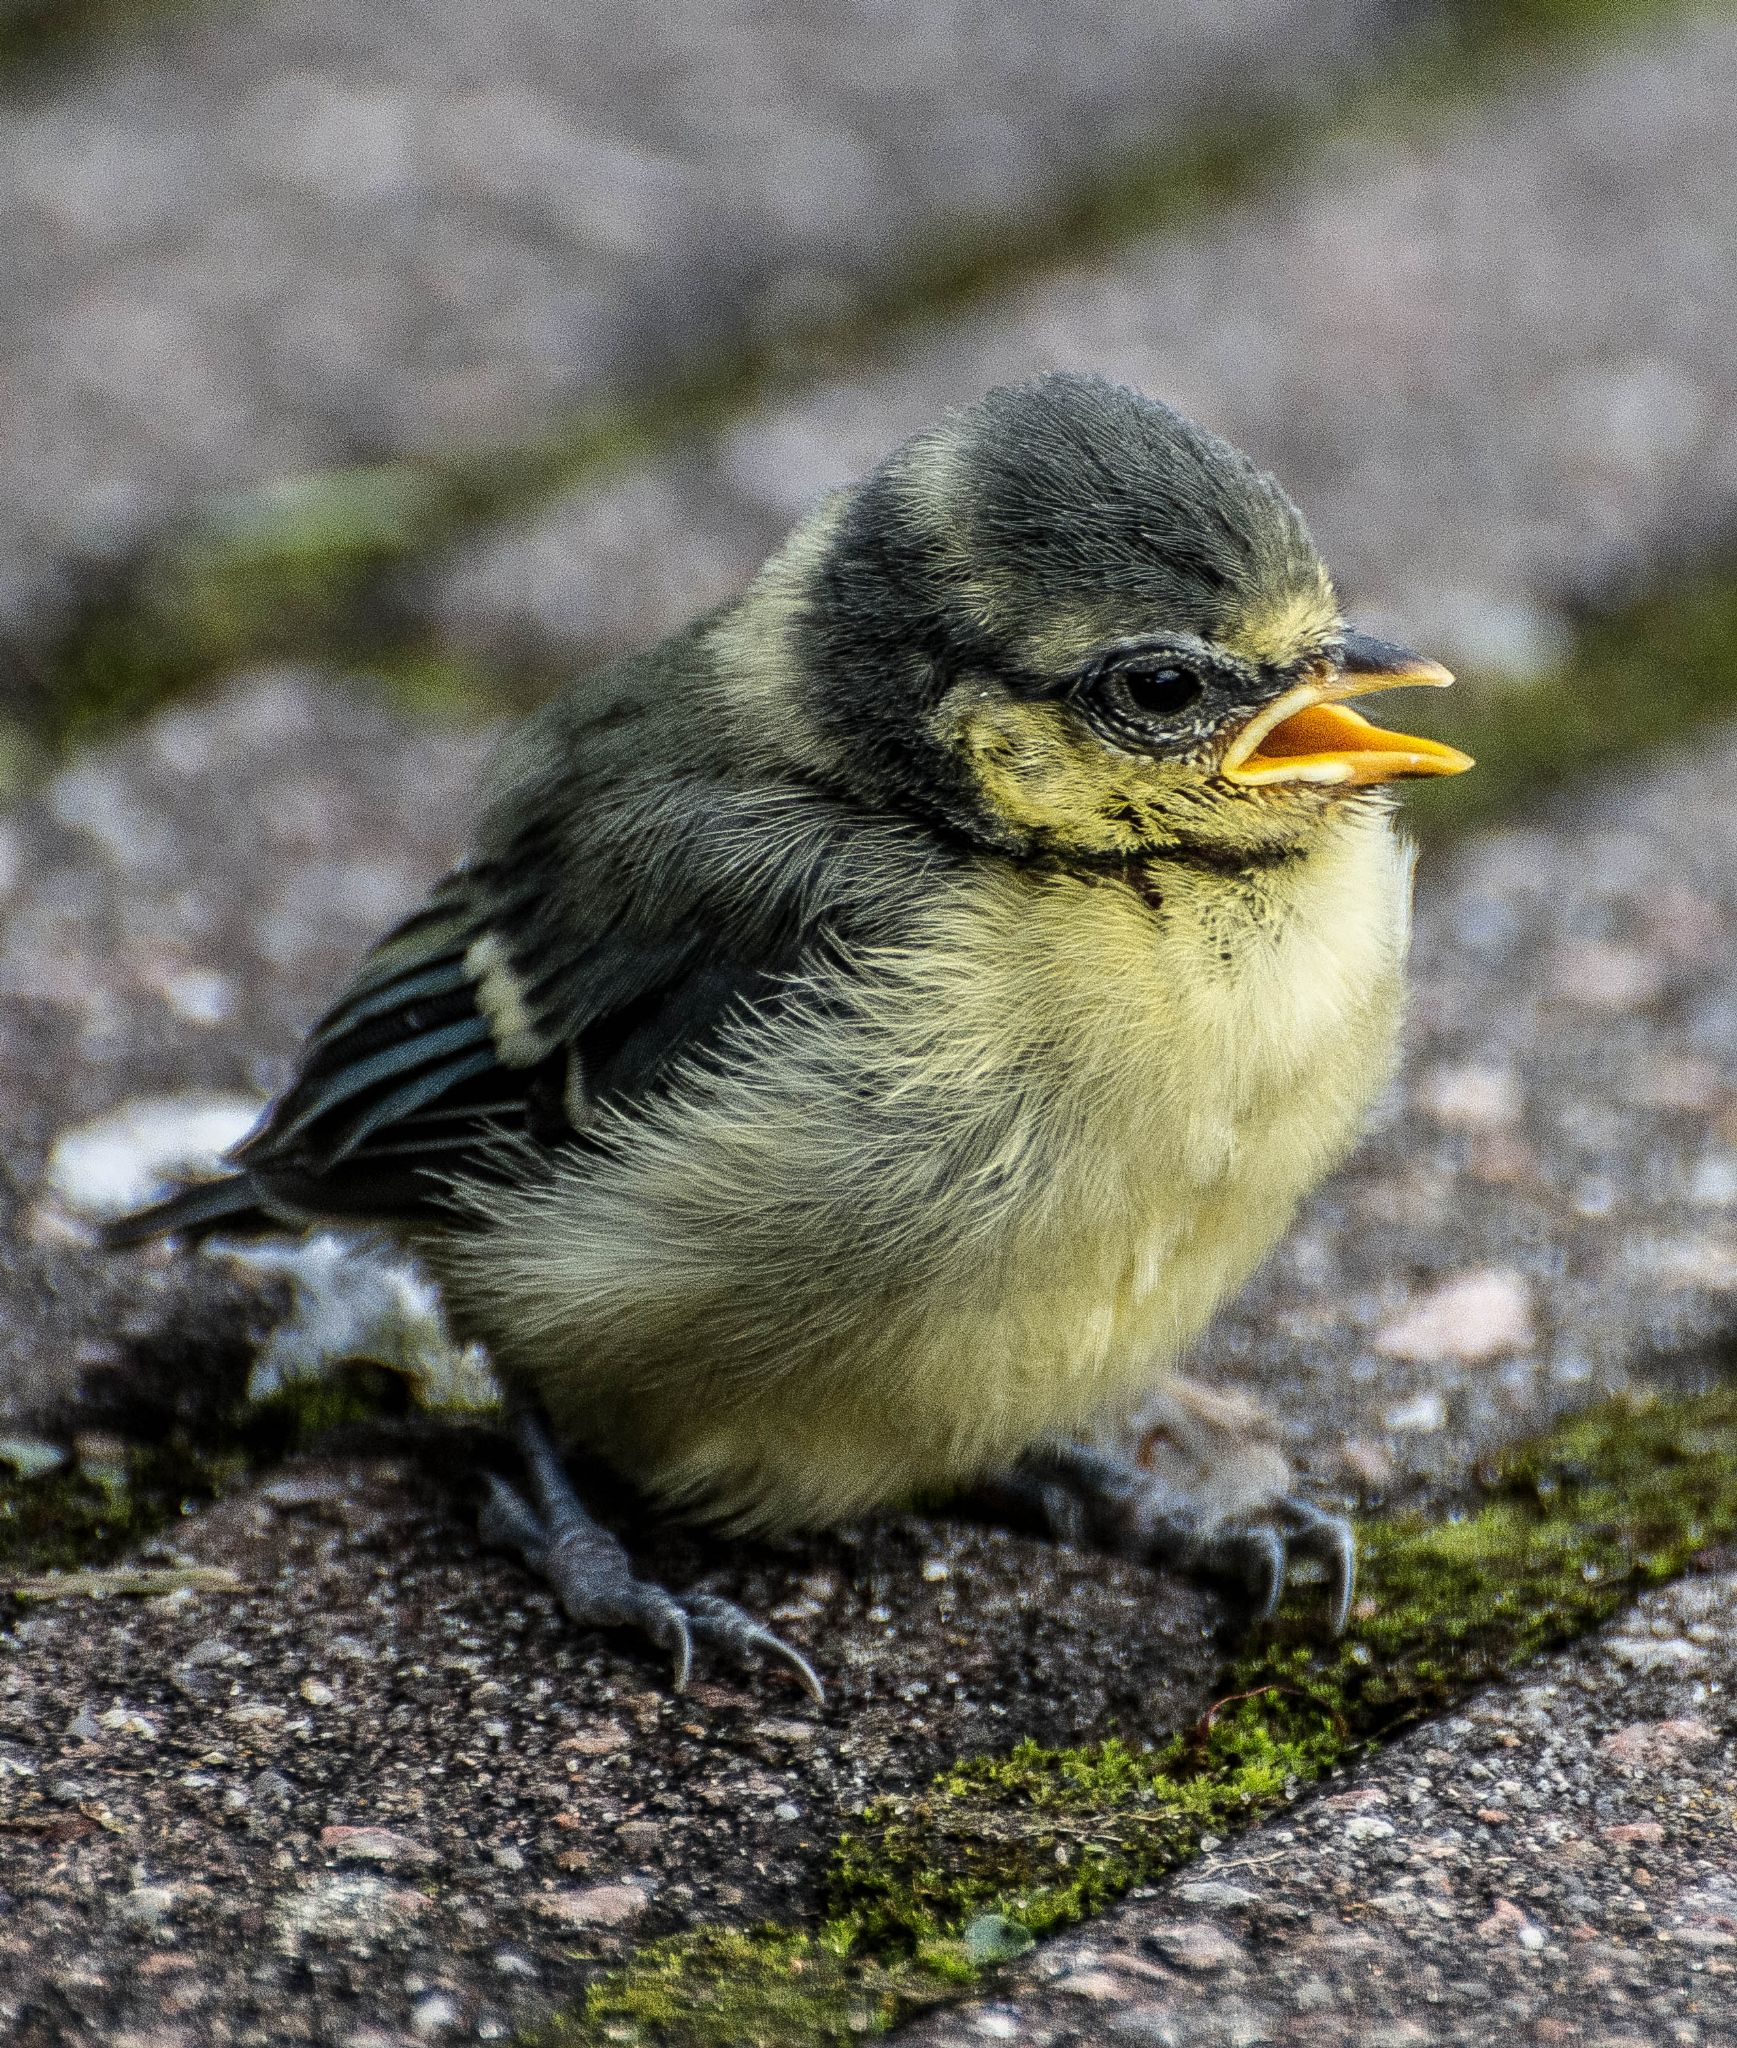 going down on his first flight. by Kees van Es